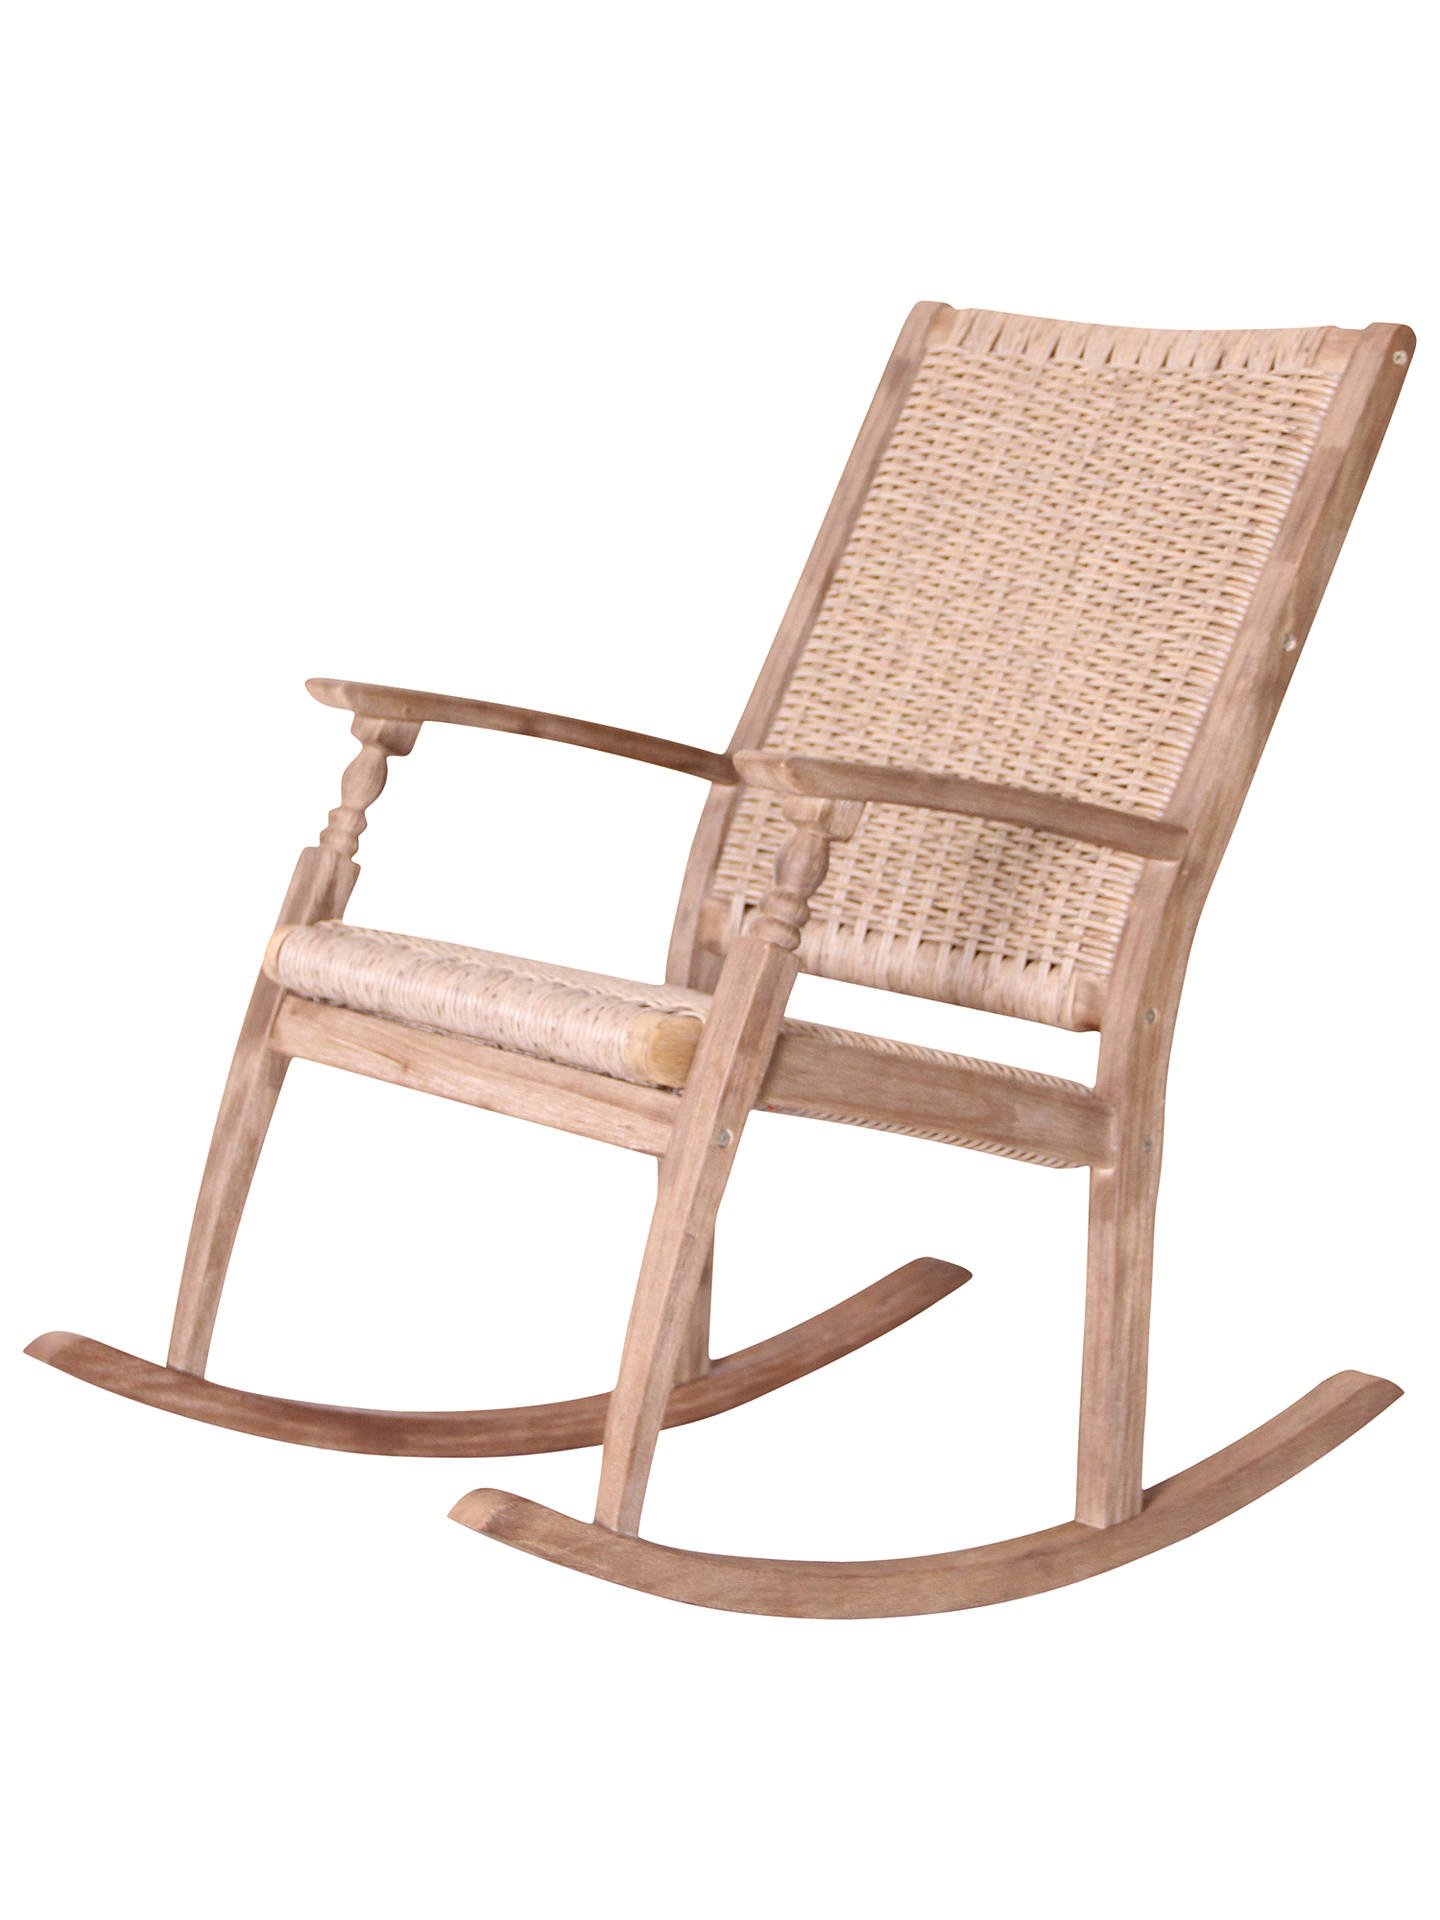 buy chairs online lg outdoor wood amp weave rocking chair fsc certified 11807 | 234218381?$rsp pdp port 1440$